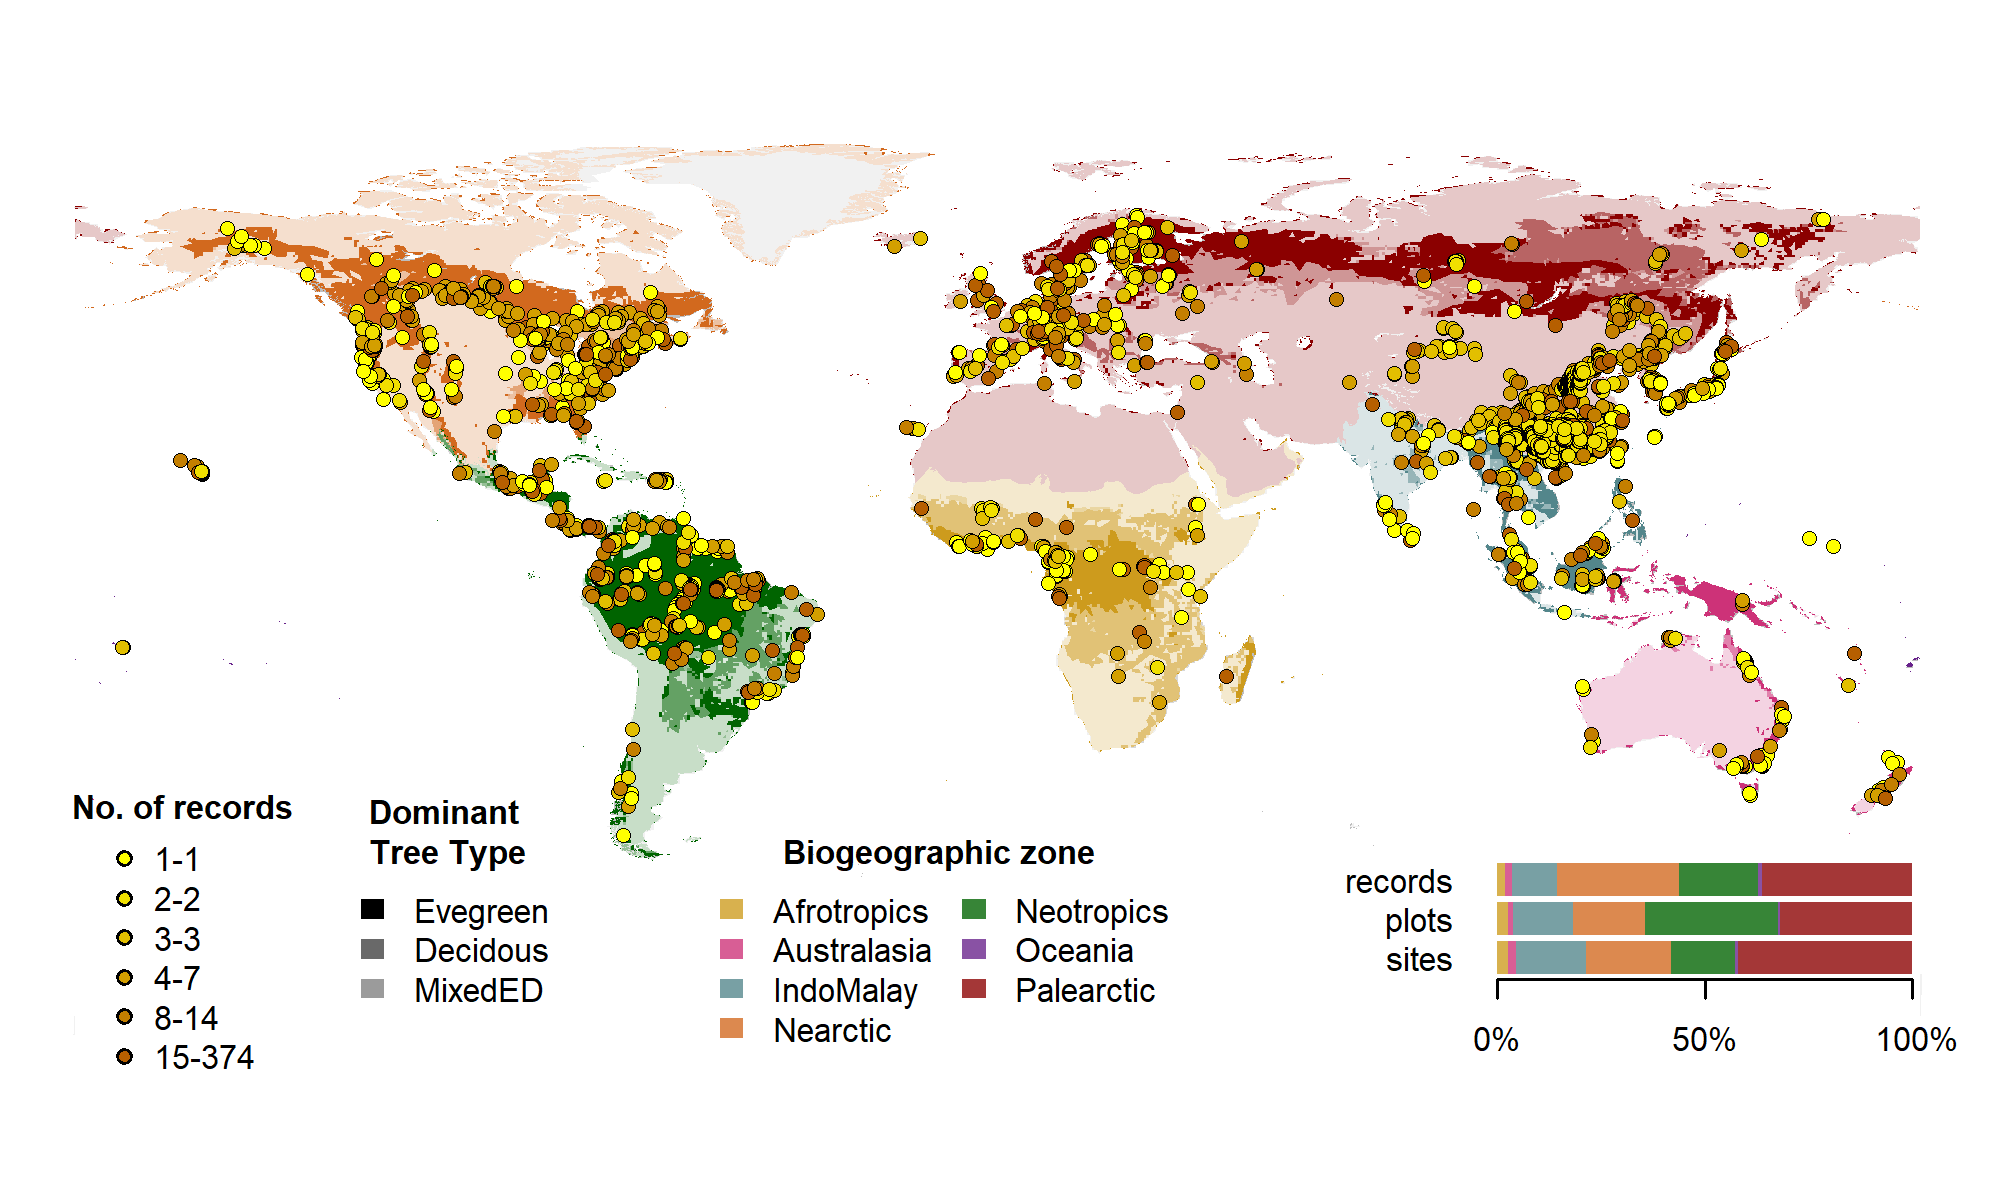 Geographical distributions of sites included in ForC-db. Symbols are colored according to the number of records from each site. Underlying map shows coverage of evergreen, deciduous, and mixed forests (from SYNMAP; Jung et al. 2006) and biogeographic zones (Olson et al. 2001). Distribution of sites, plots, and records among biogeographic zones is shown in the inset.